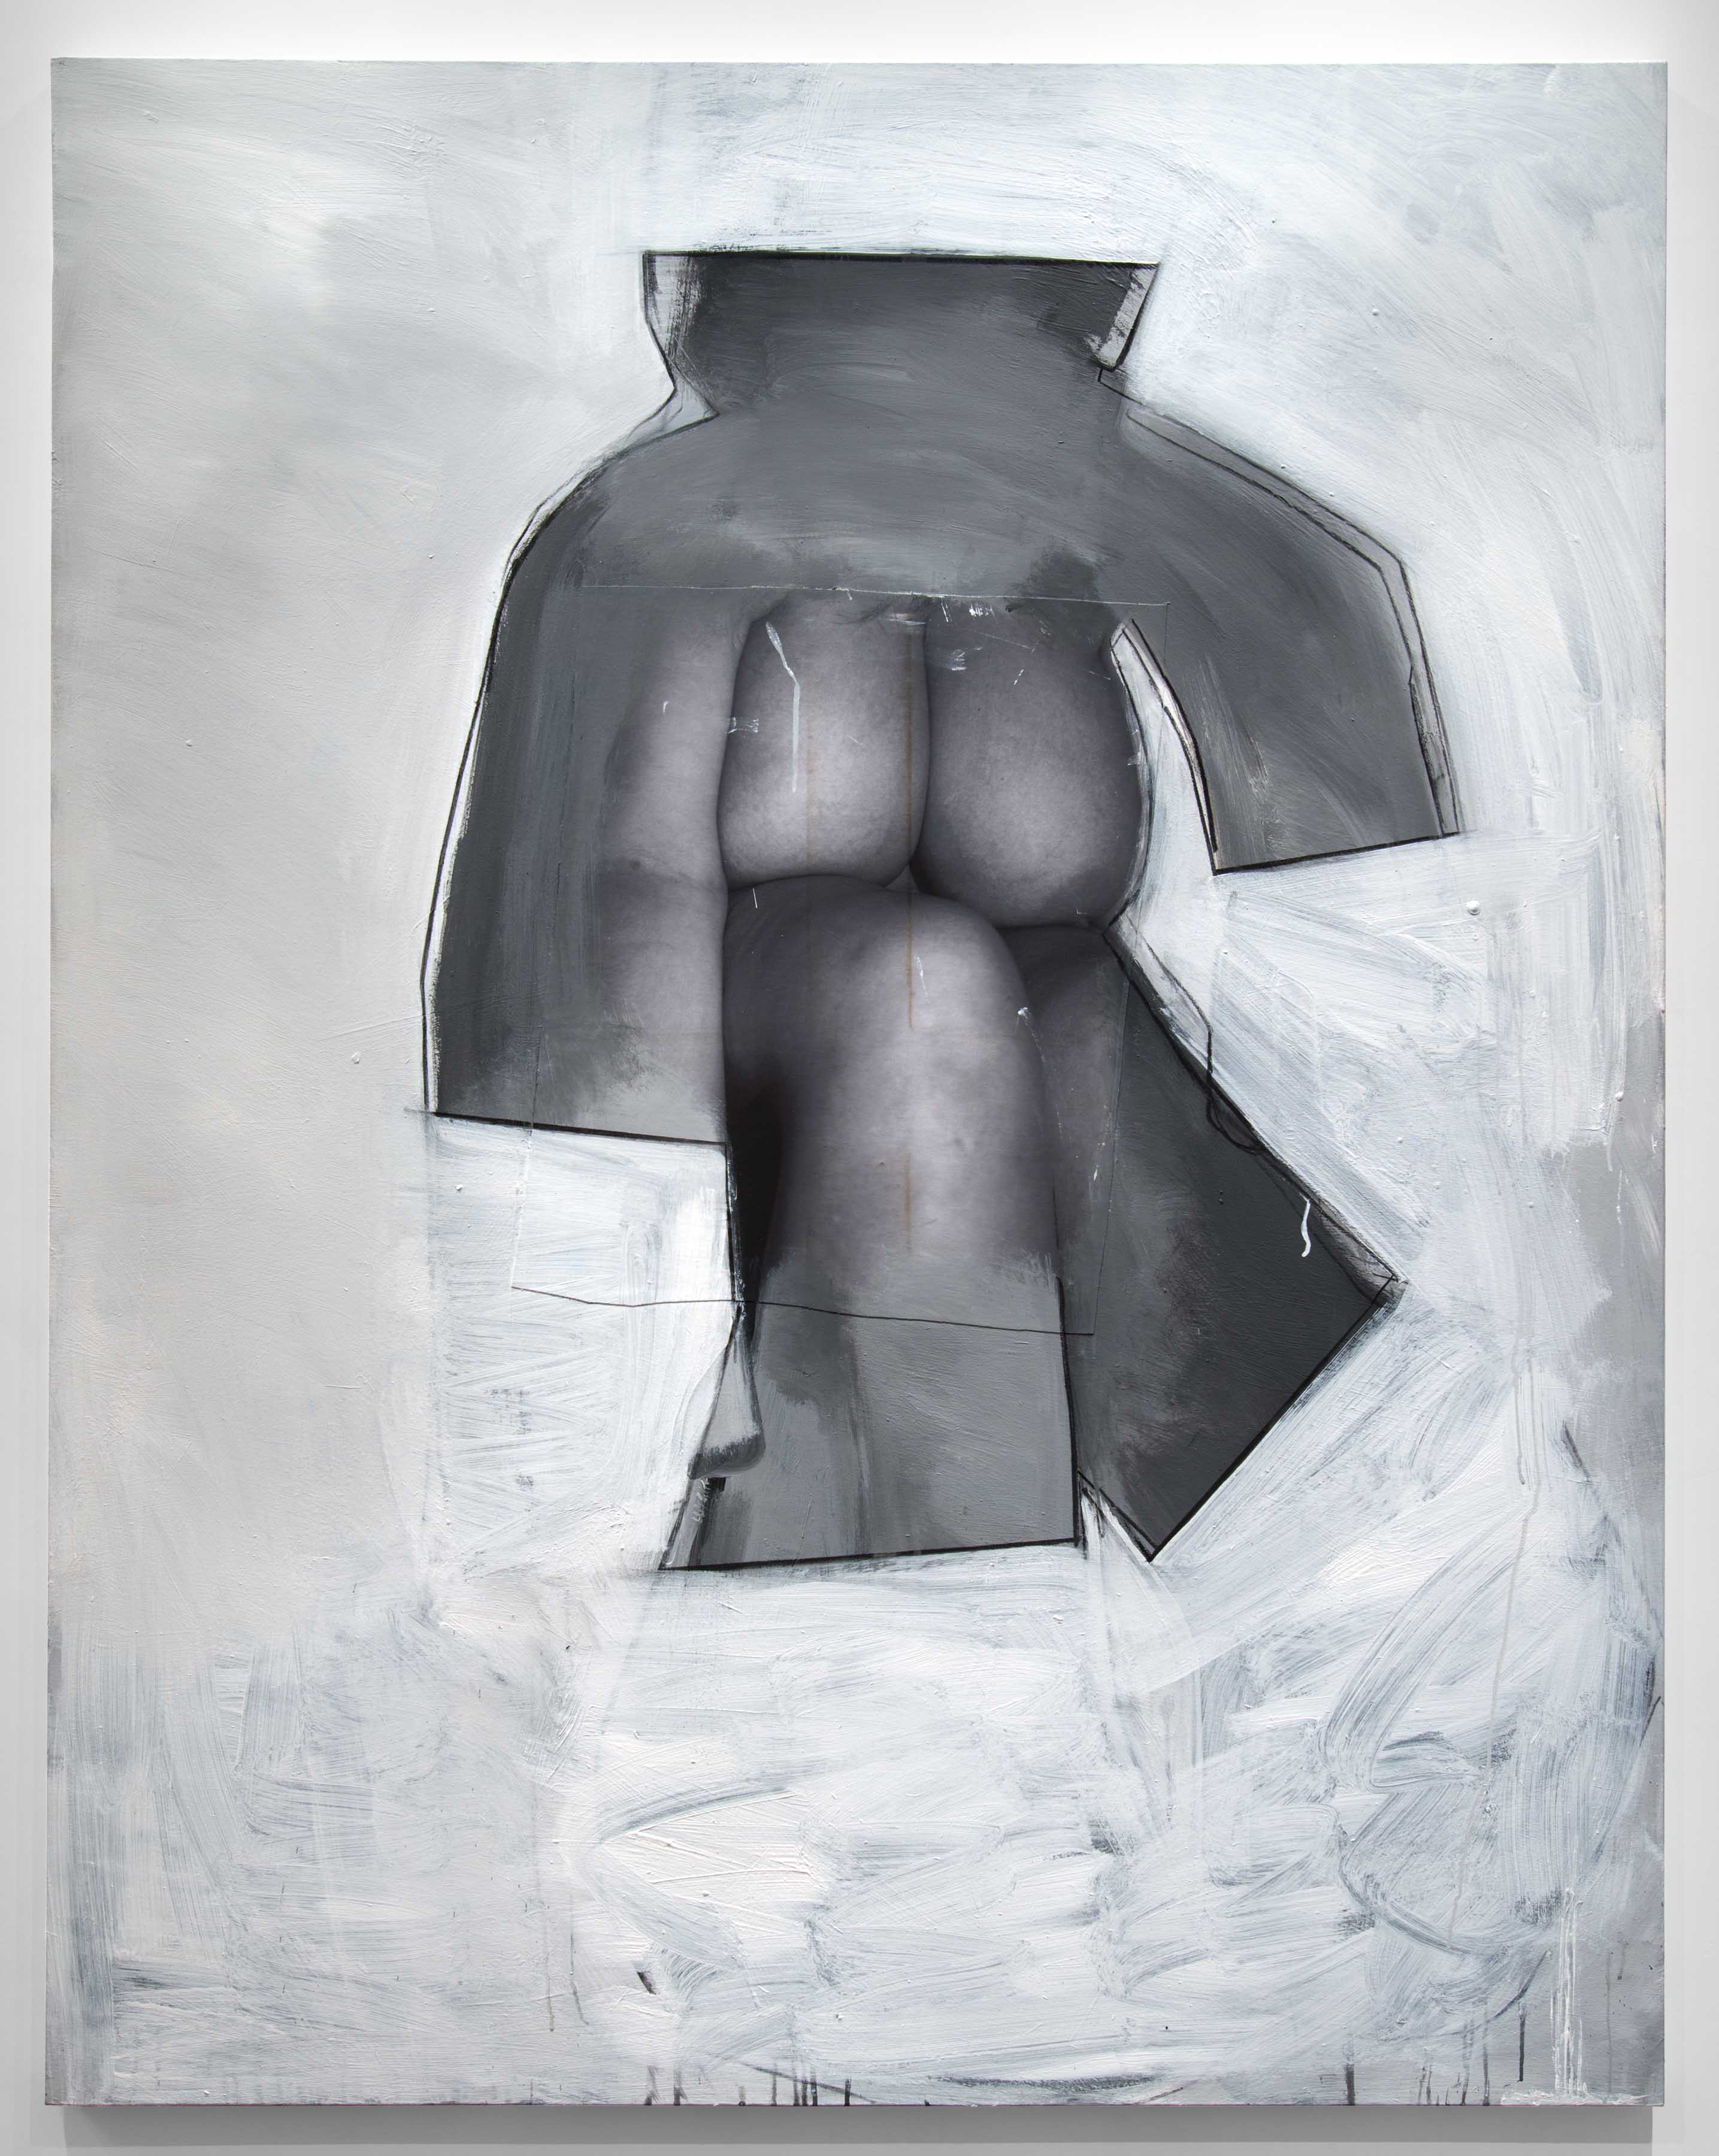 'Richard Prince: The Figures' On View April 23 in New York City